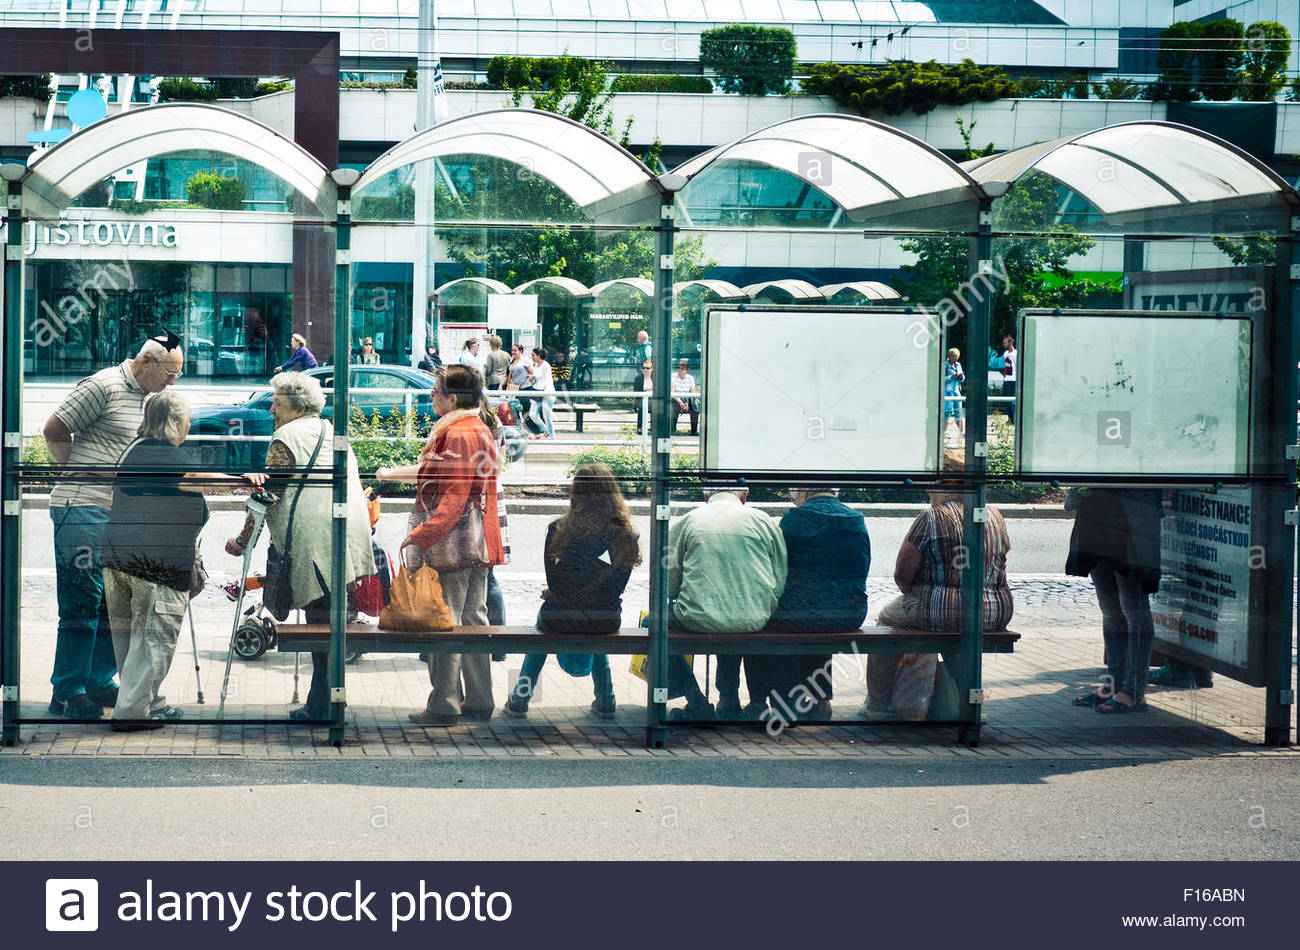 people waiting bus at the bust stop - Stock Image